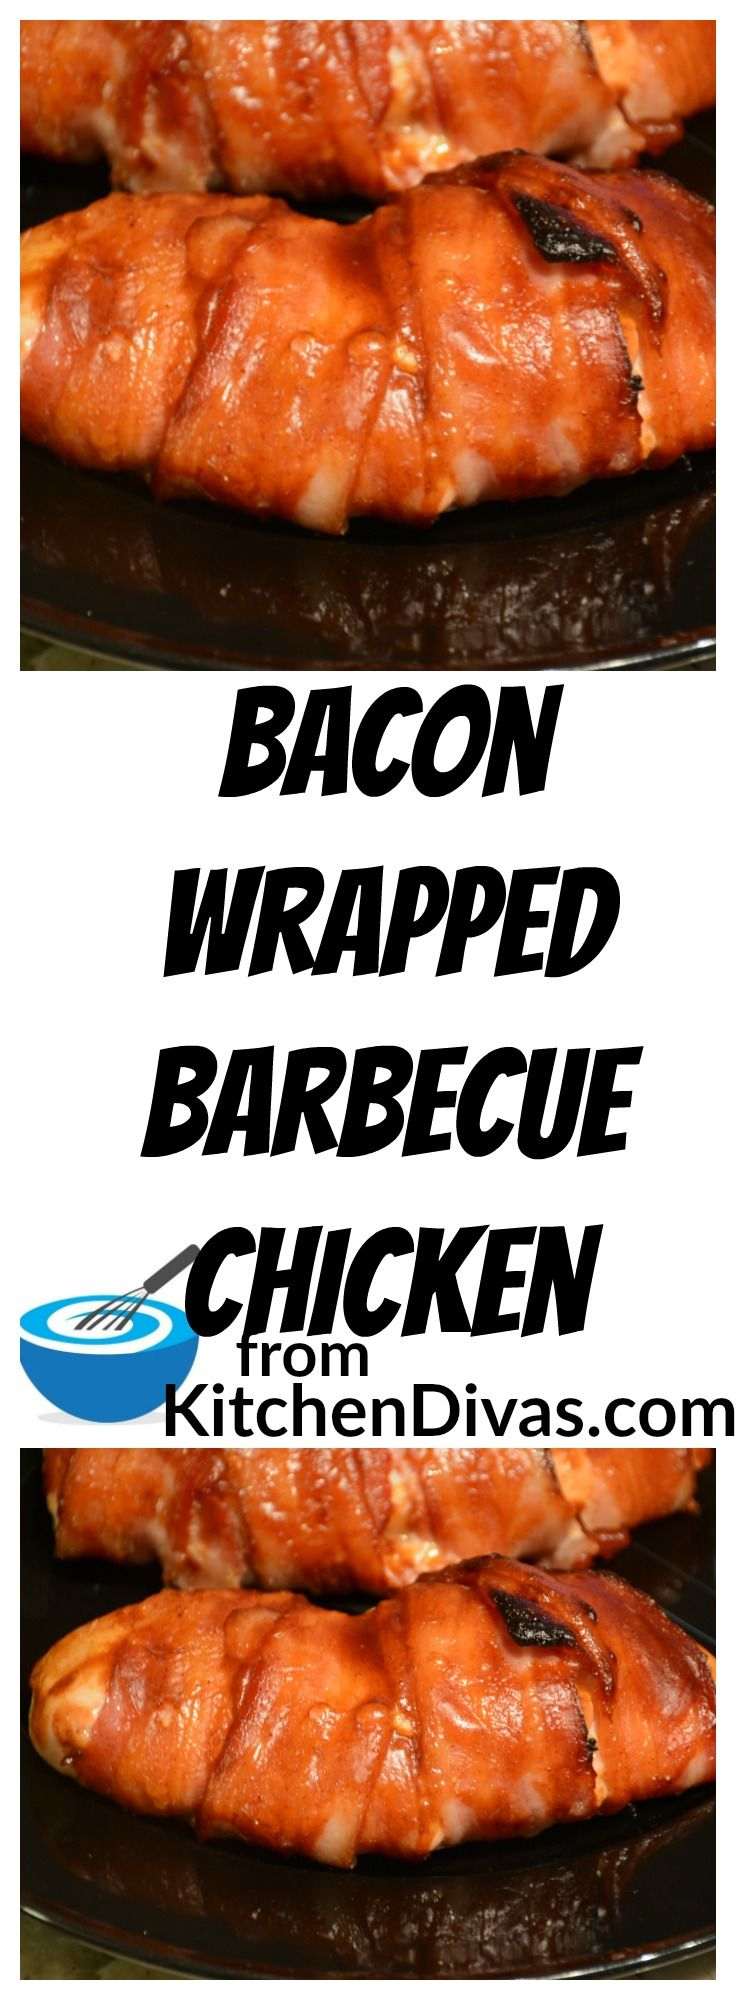 Bacon Wrapped Barbecue Chicken